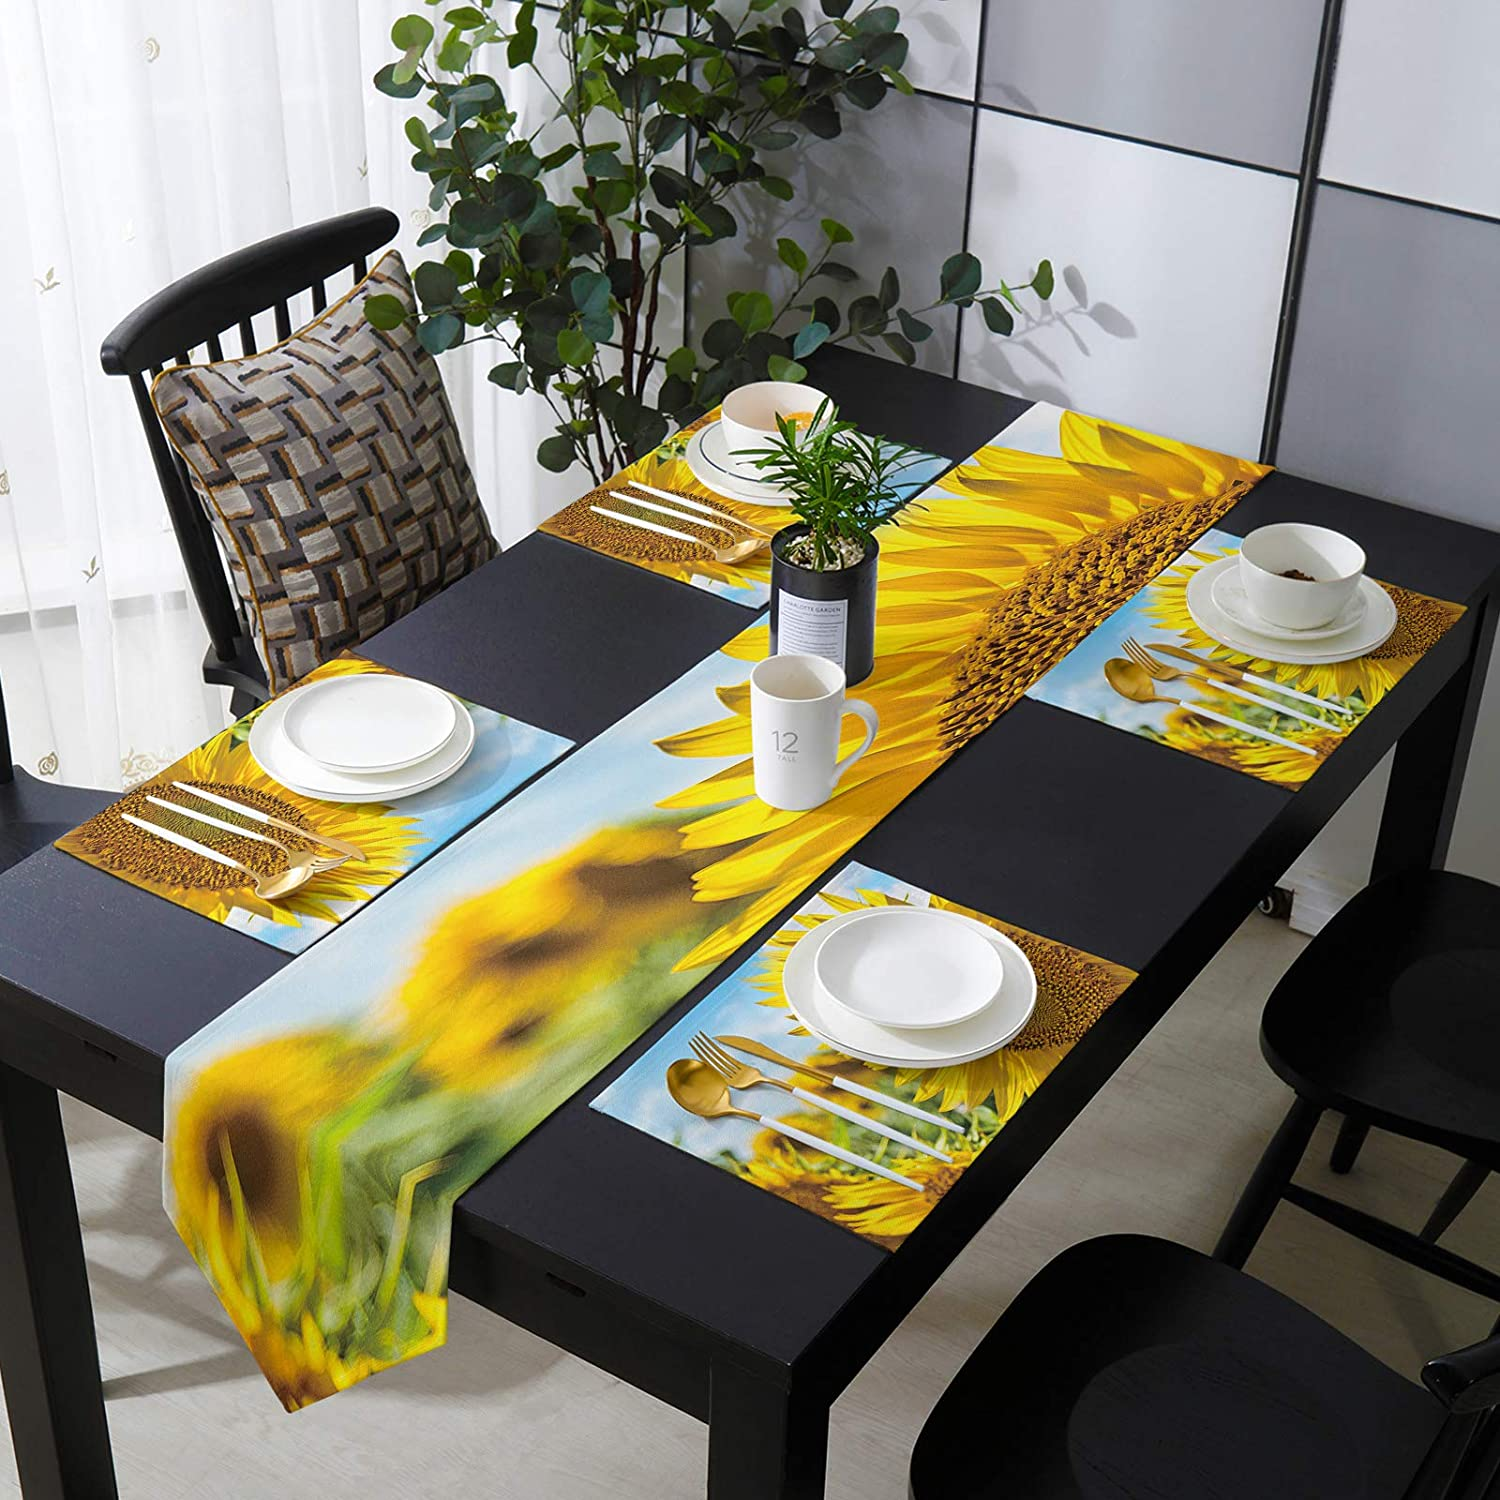 Fangship Placemats Free shipping on posting reviews with Table Runner Sunflo Set Ranking integrated 1st place Dining for